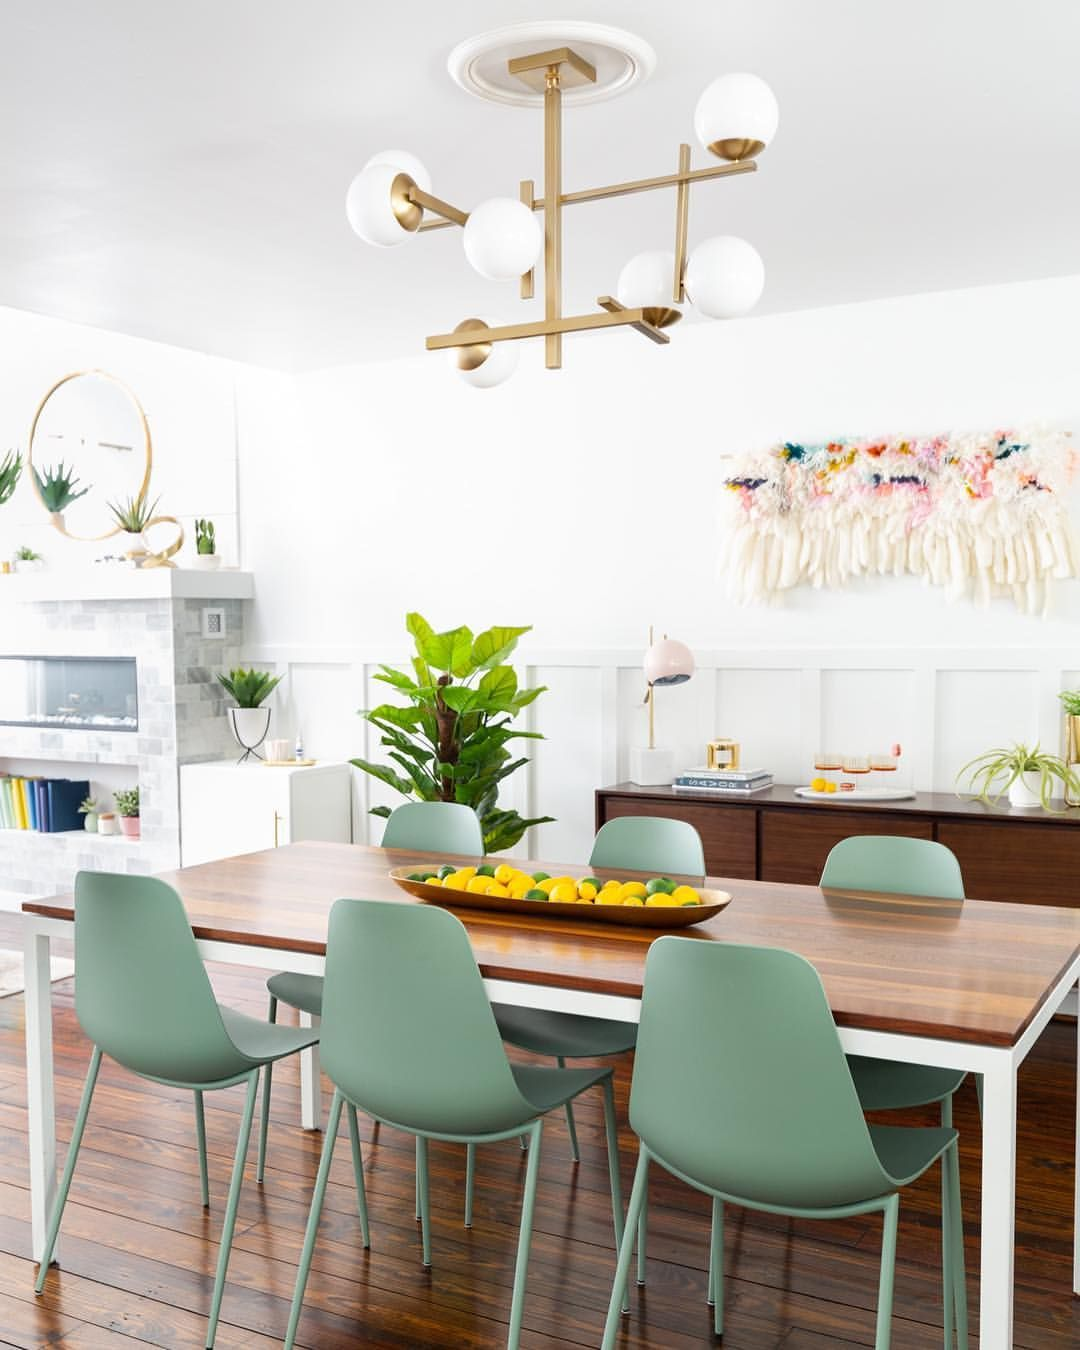 Modern Dining Room With Wood Furniture And Muted Mint Green Chairs